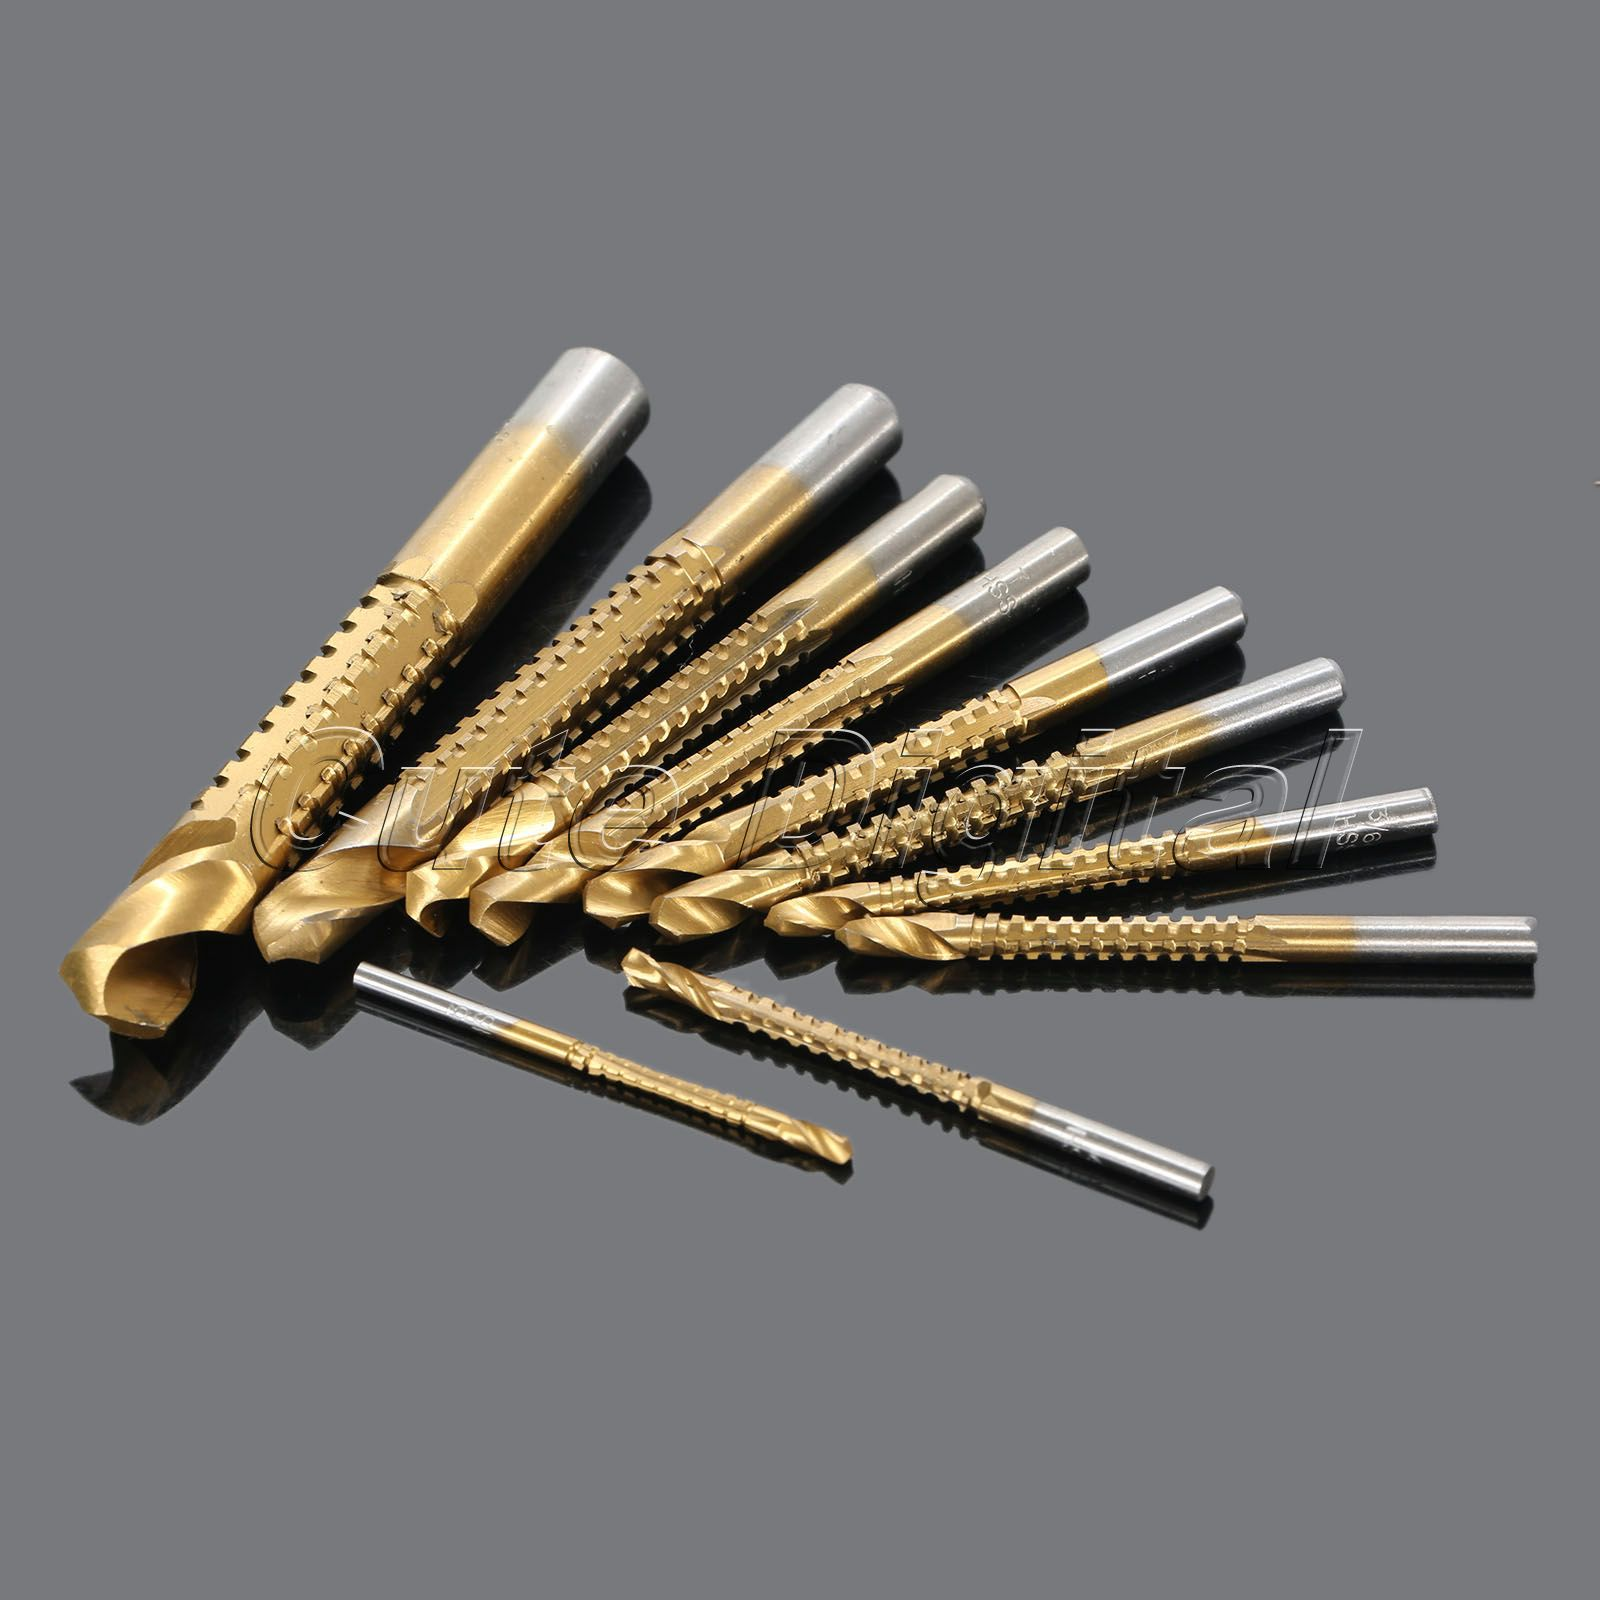 10Pcs/set Titanium Coated HSS High Speed Steel Saw Drill Bit Set Cutter Tools Woodworking Hole Saw Drill Bits Power Tools 3-13mm jelbo cone step drill hole tools countersink 3pc drill bit set power tools step drill bit for metal power tools set hole cutter